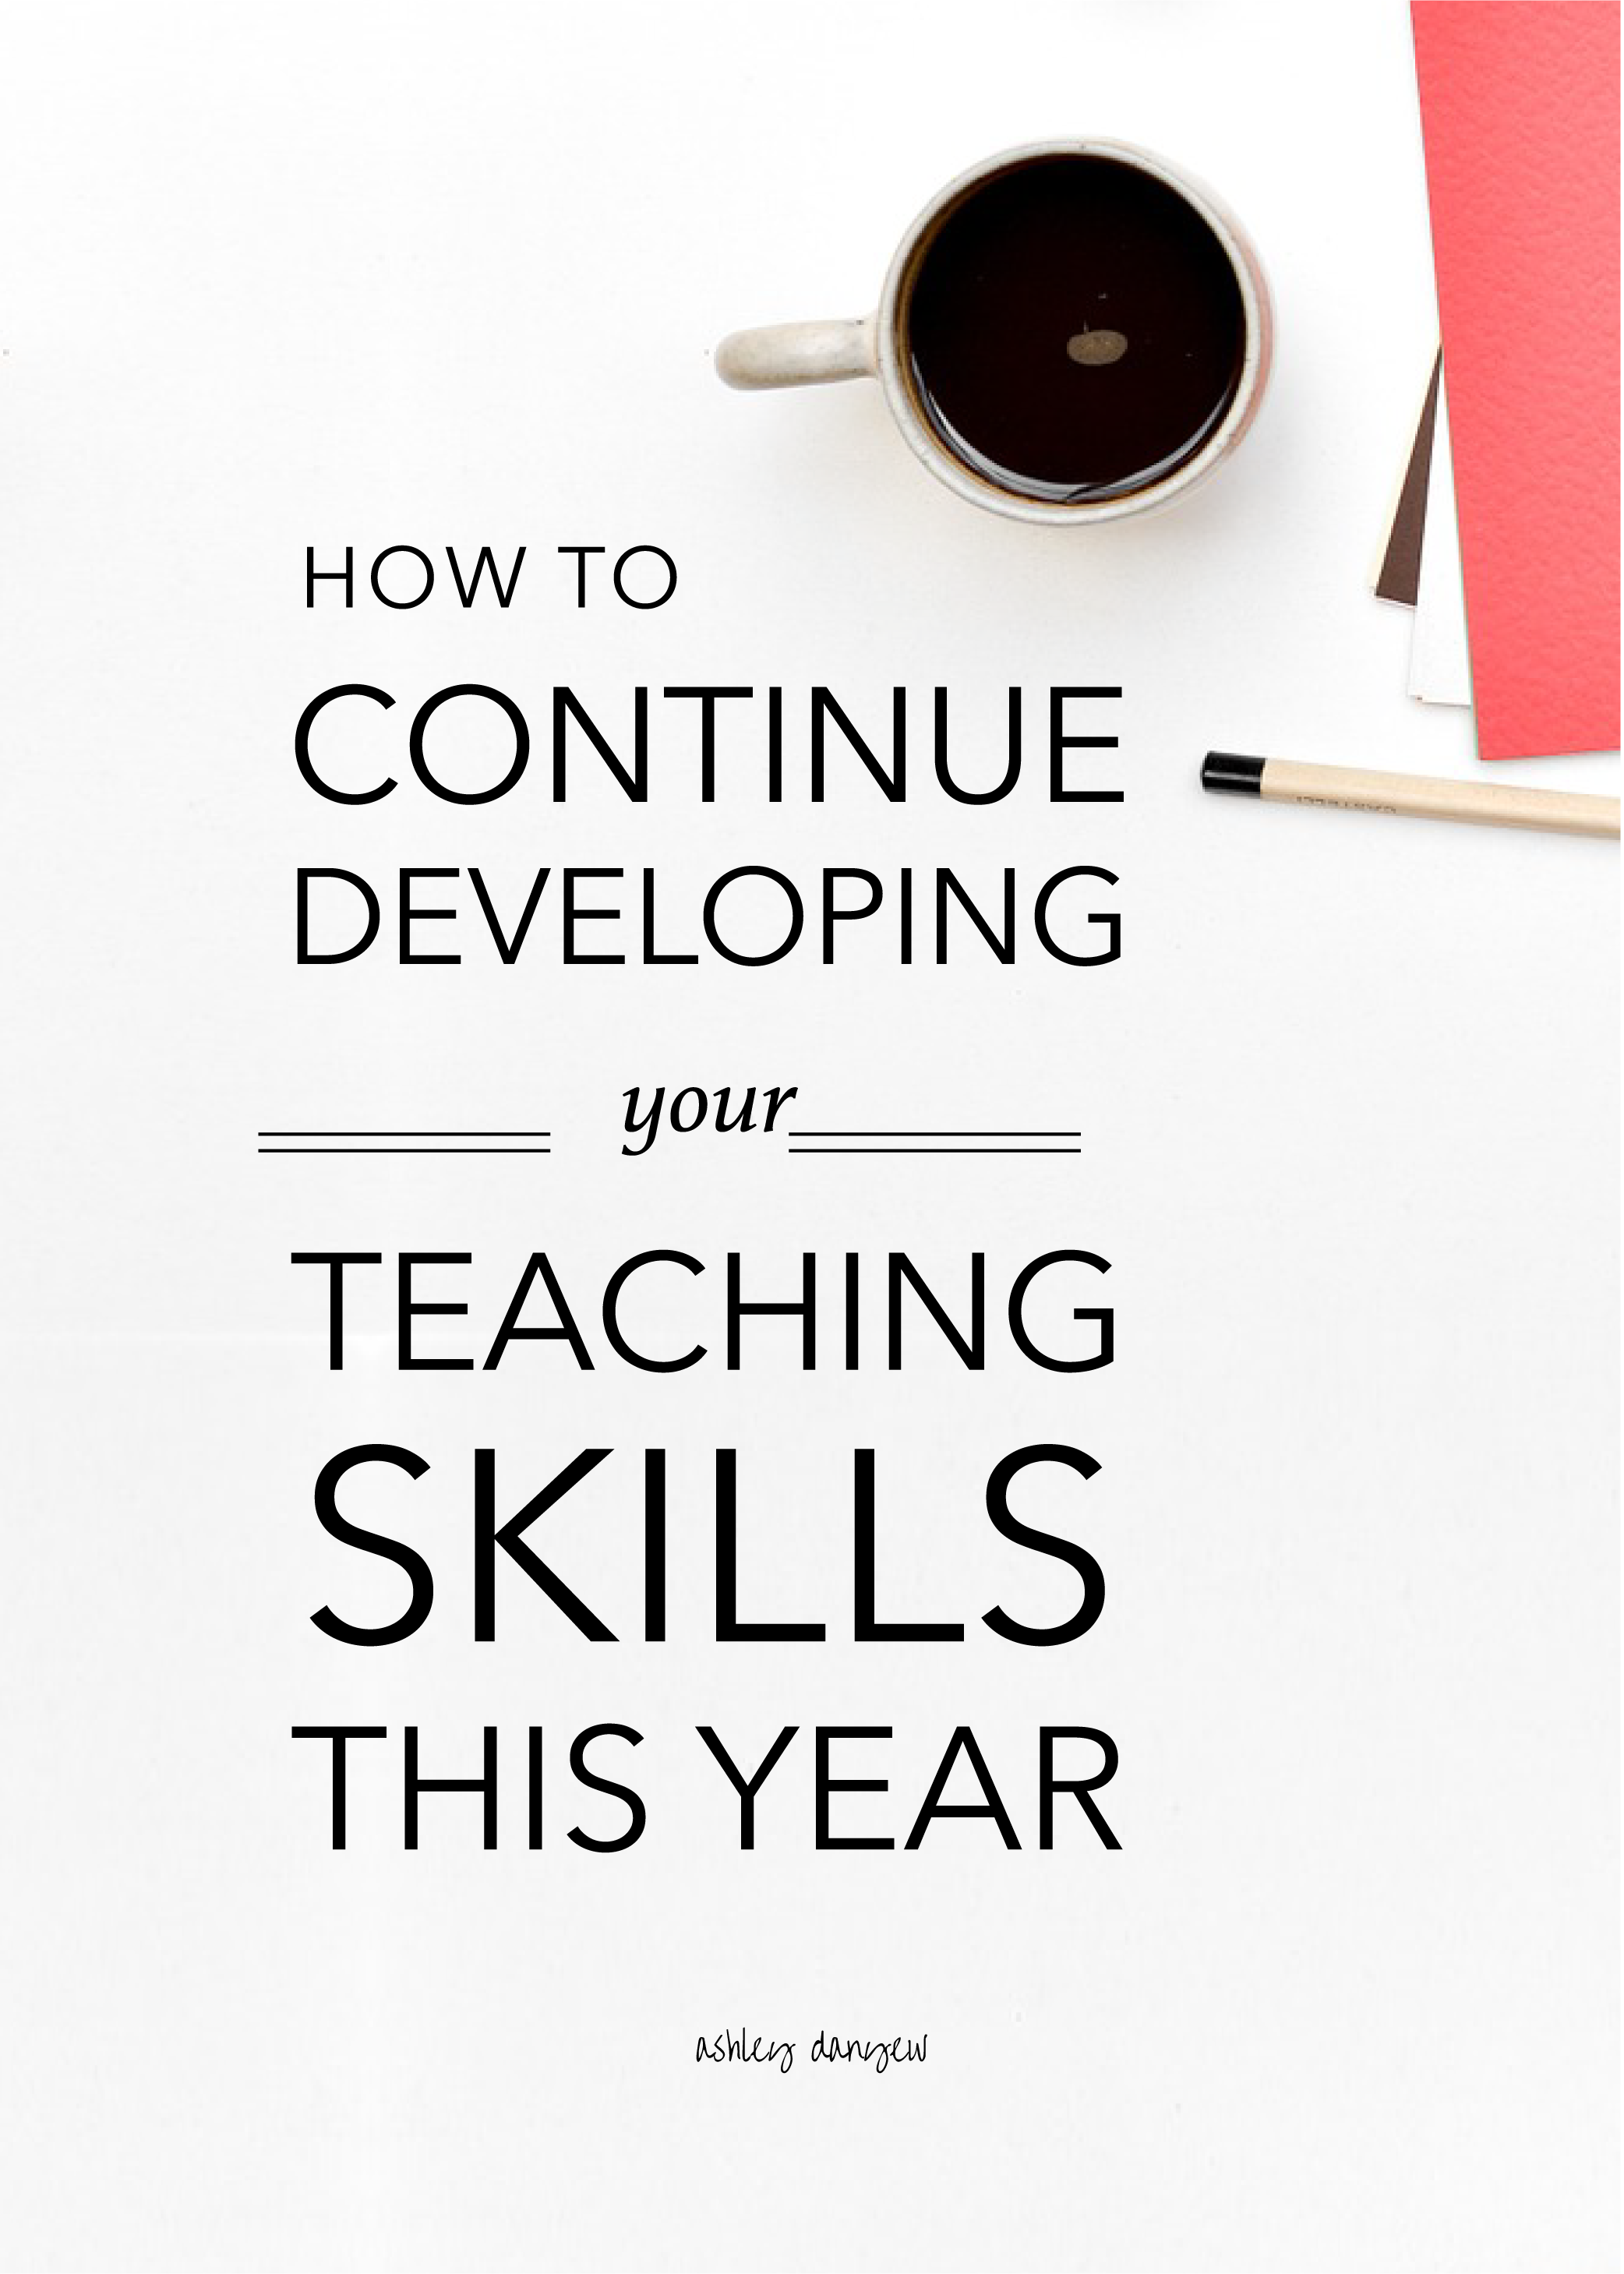 Copy of How to Continue Developing Your Teaching Skills This Year